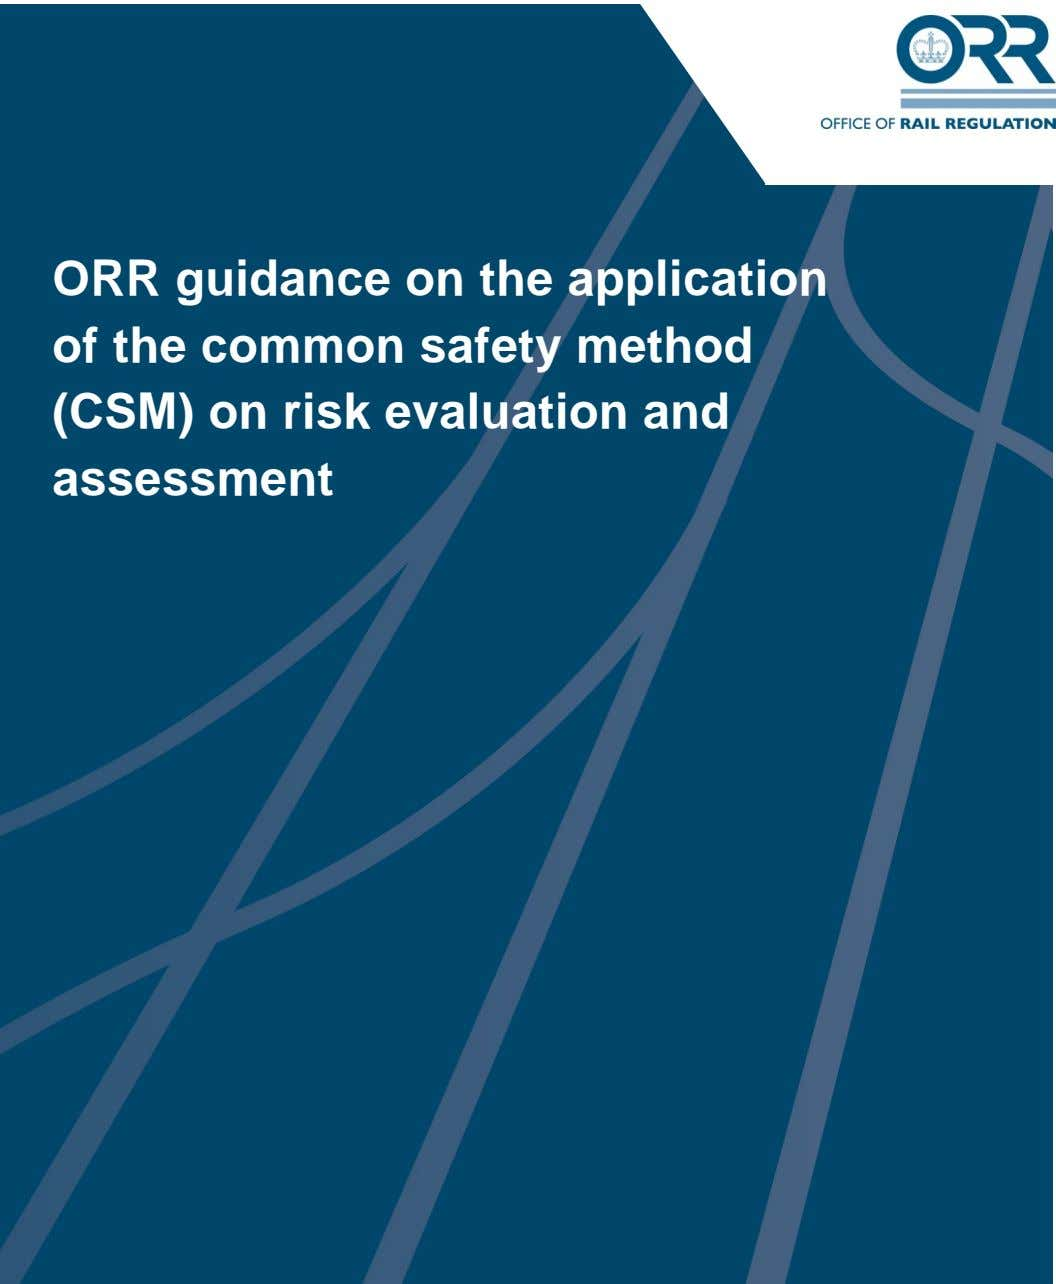 ORR guidance on the application of the common safety method (CSM) on risk evaluation and